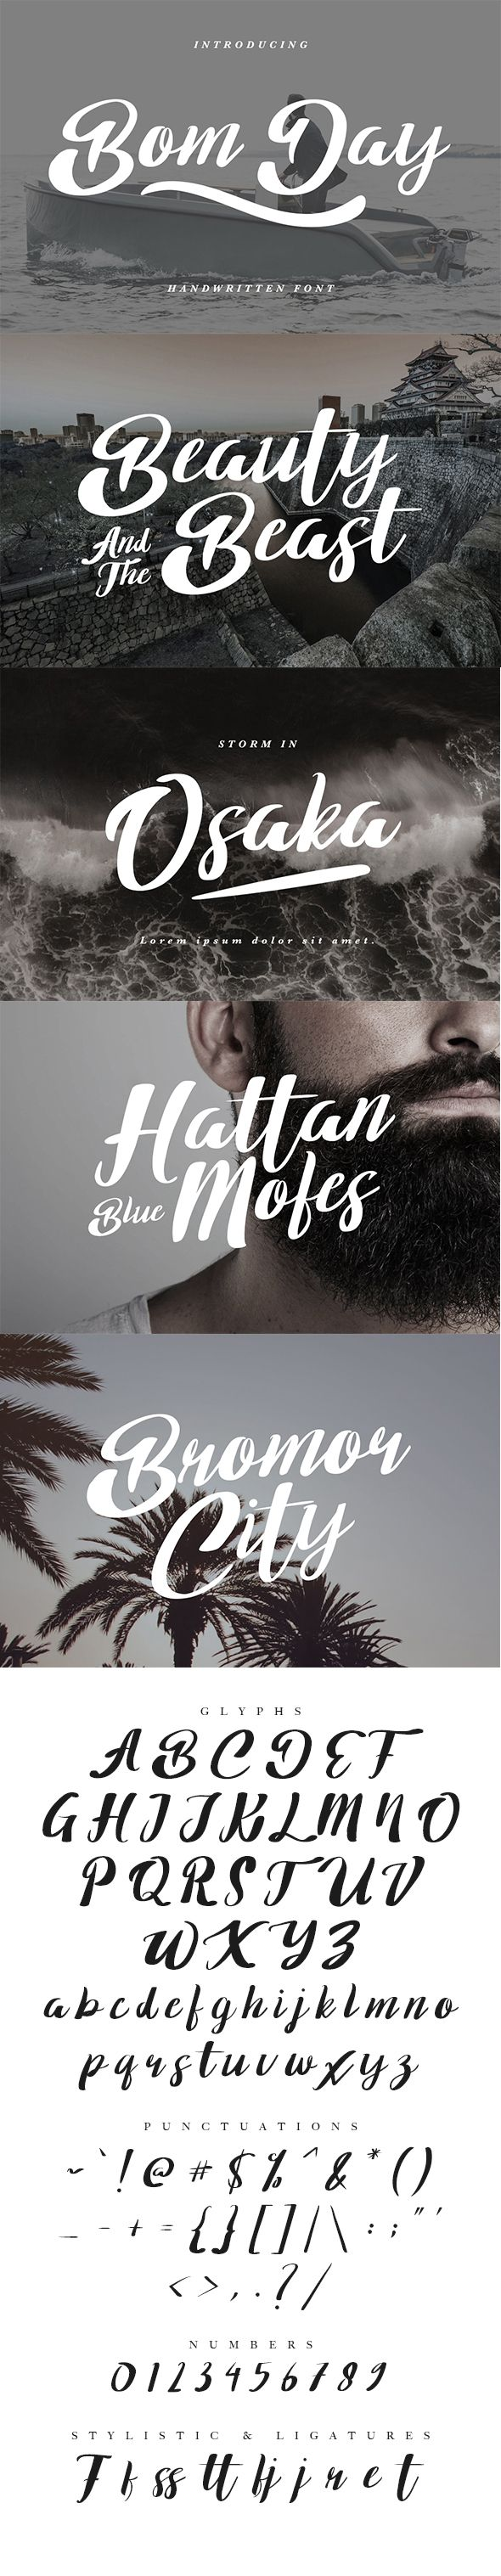 Bom Day Font — TrueType TTF #handwriting #clean • Download ➝ https://graphicriver.net/item/bom-day-font/19776101?ref=pxcr